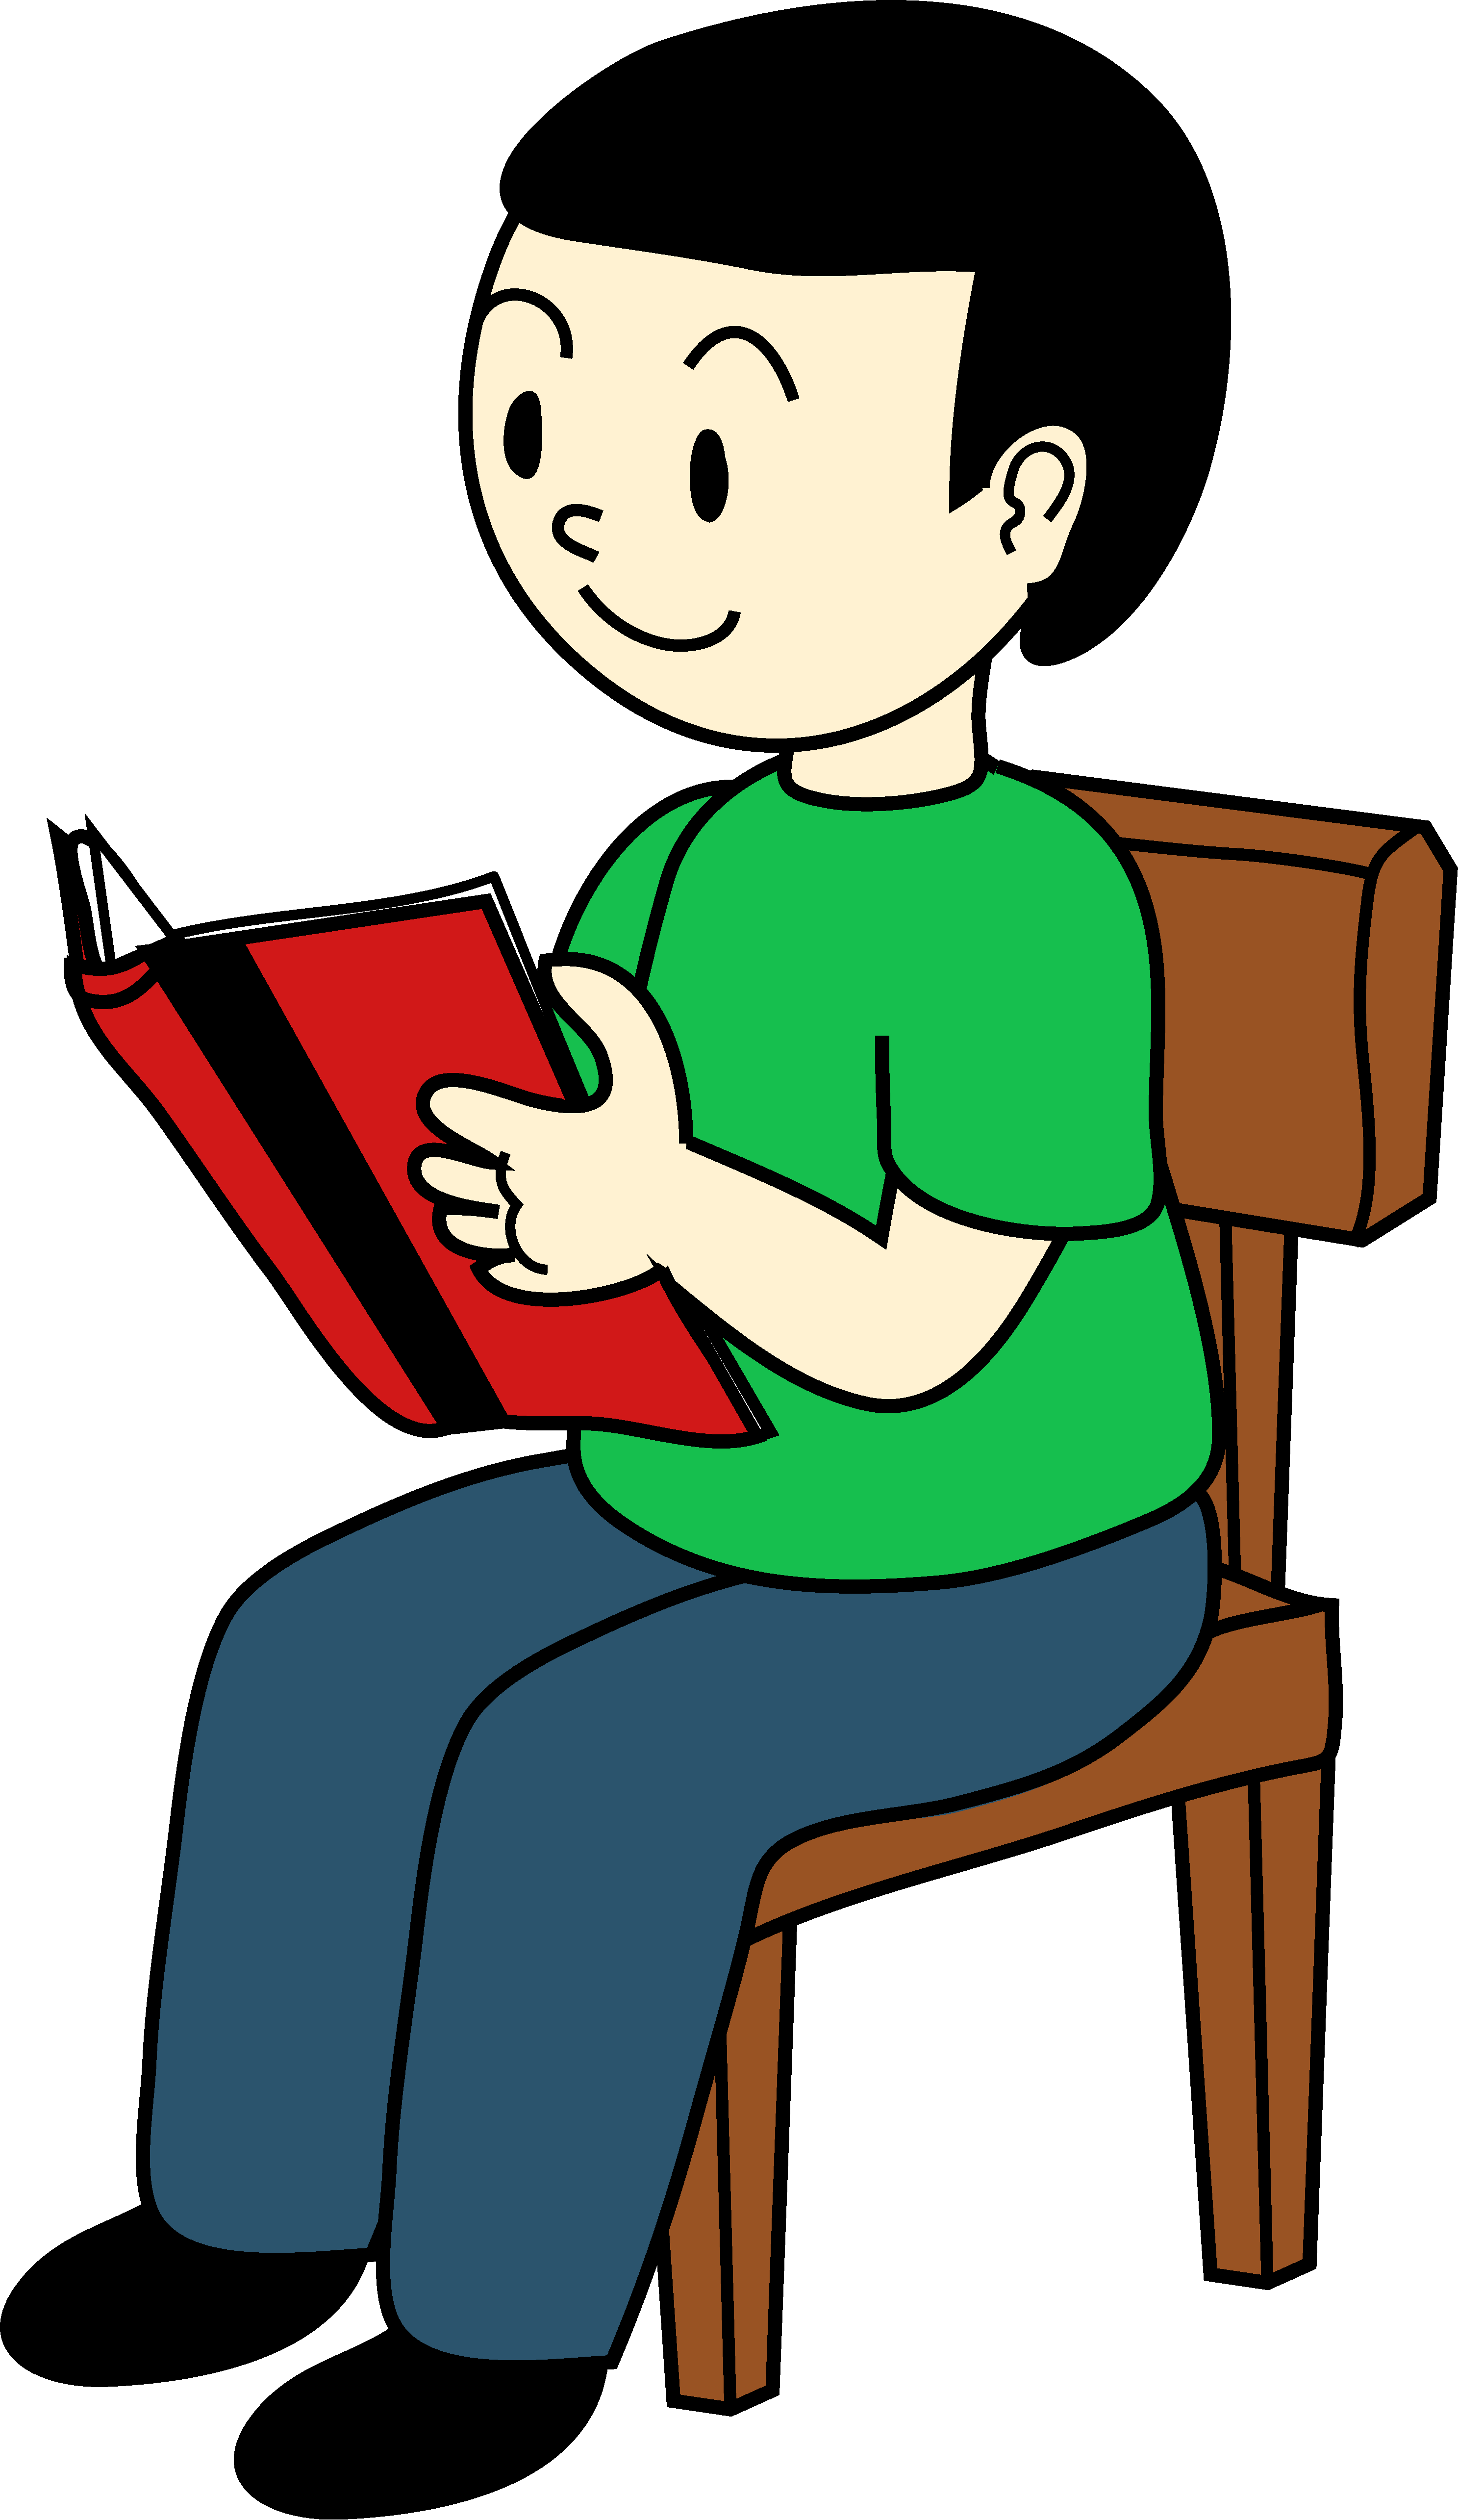 png transparent stock Sitting clipart. Boy on chair reading